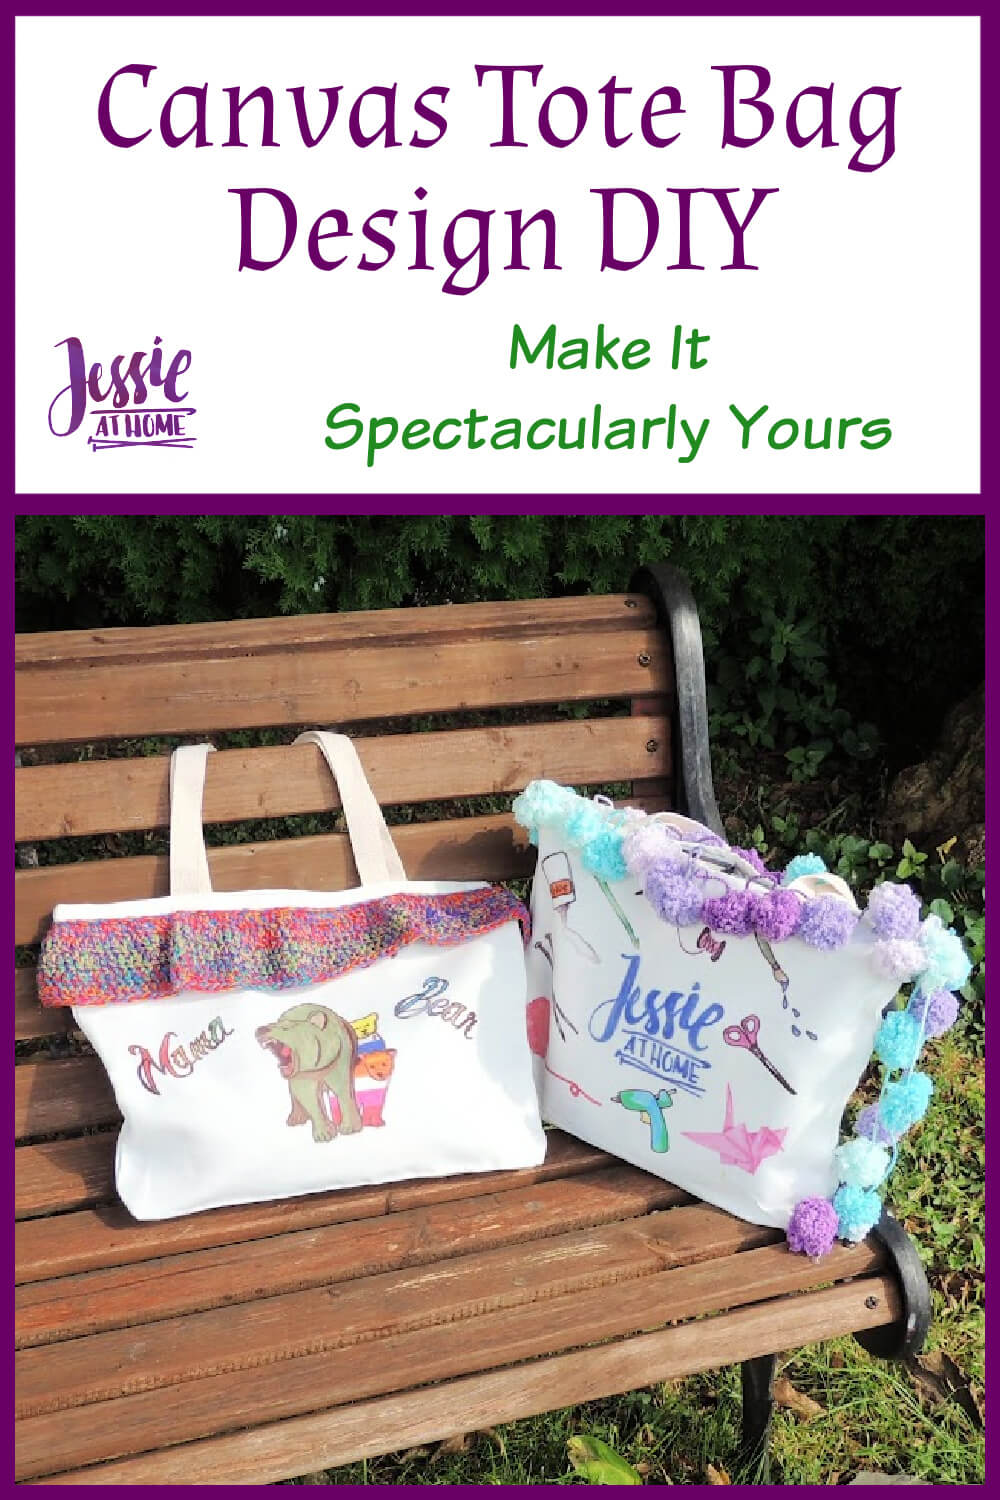 """A white vertical rectangle with a purple boarder. On the top third are the words """"Canvas Tote Bag Design DIY"""" written in purple, under that are the words """"Make It Spectacularly Yours"""" in green. To the left of that is """"Jessie at Home"""" in purple. The bottom two thirds is a photo of a wood bench with two tote bags on it, one tote bag has an image of a roaring brown bear standing in front of a cub with the stipes of the lesbian flag and another cub with the stipes of the non binary flat, on either side of the image are the words """"mama"""" and """"bear"""", along the top of the tote is a crochet trim made with rainbow yarn. The other tote bag is decorated with various craft images, the Jessie At Home logo, and pom pom yarn."""